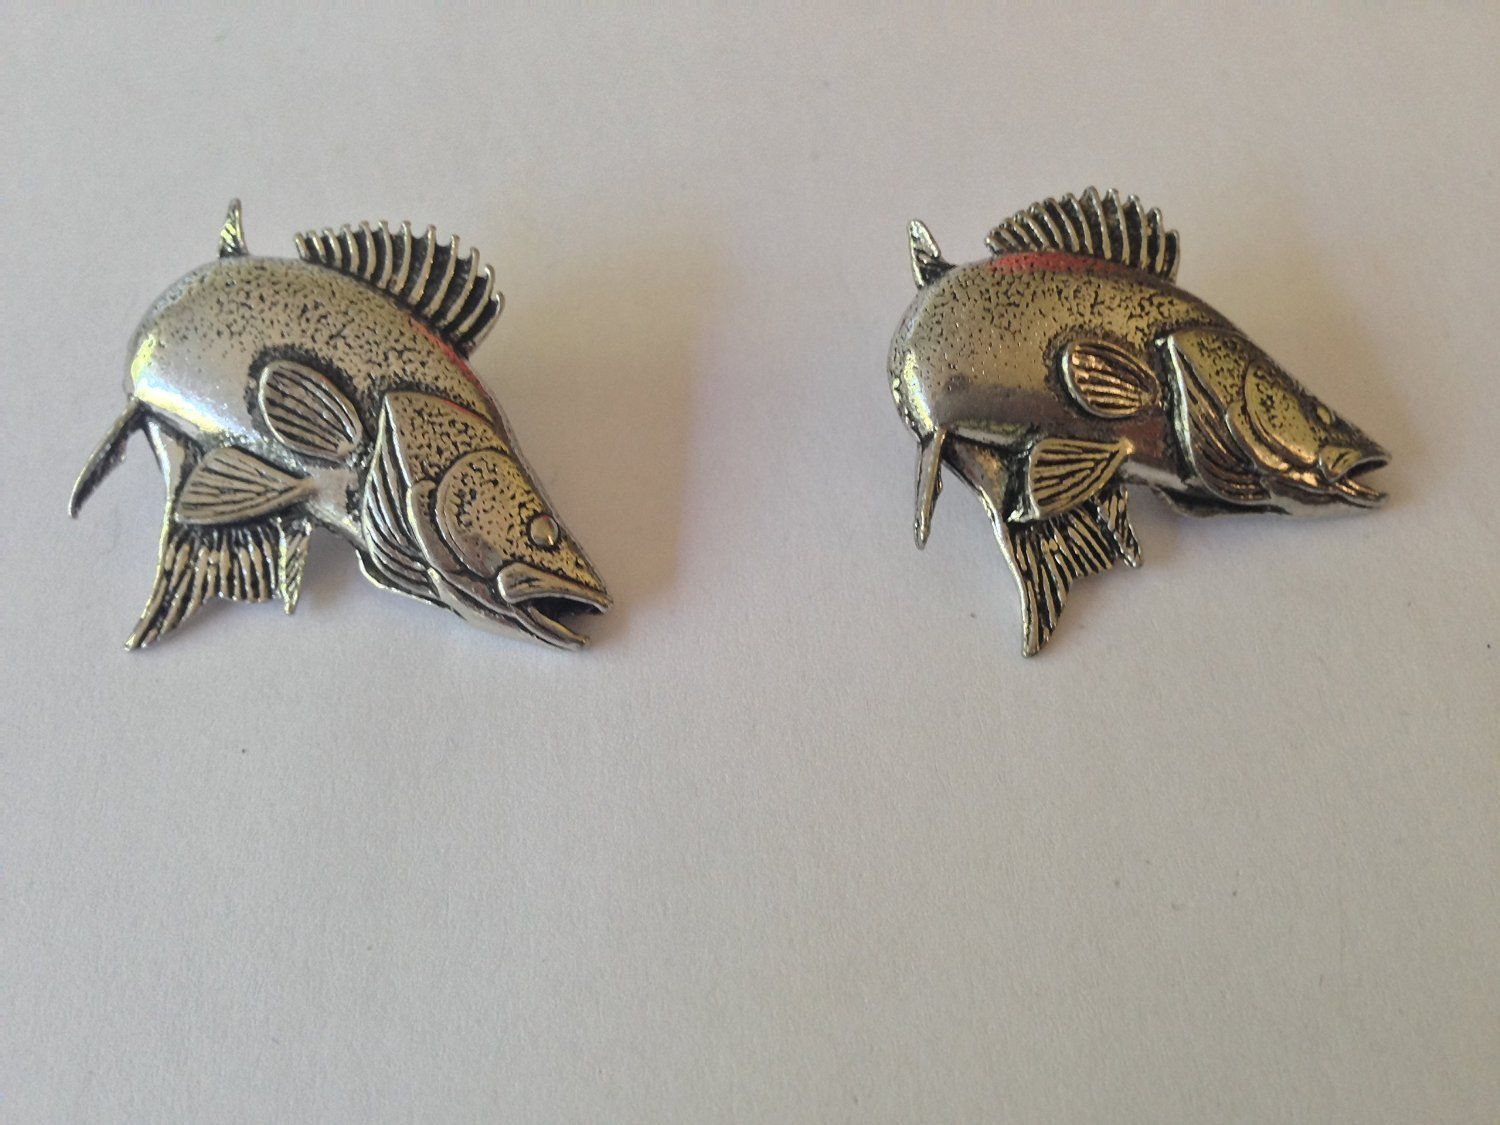 Zander walleye f24 fine english pewter fish cufflinks for Zander credit protection